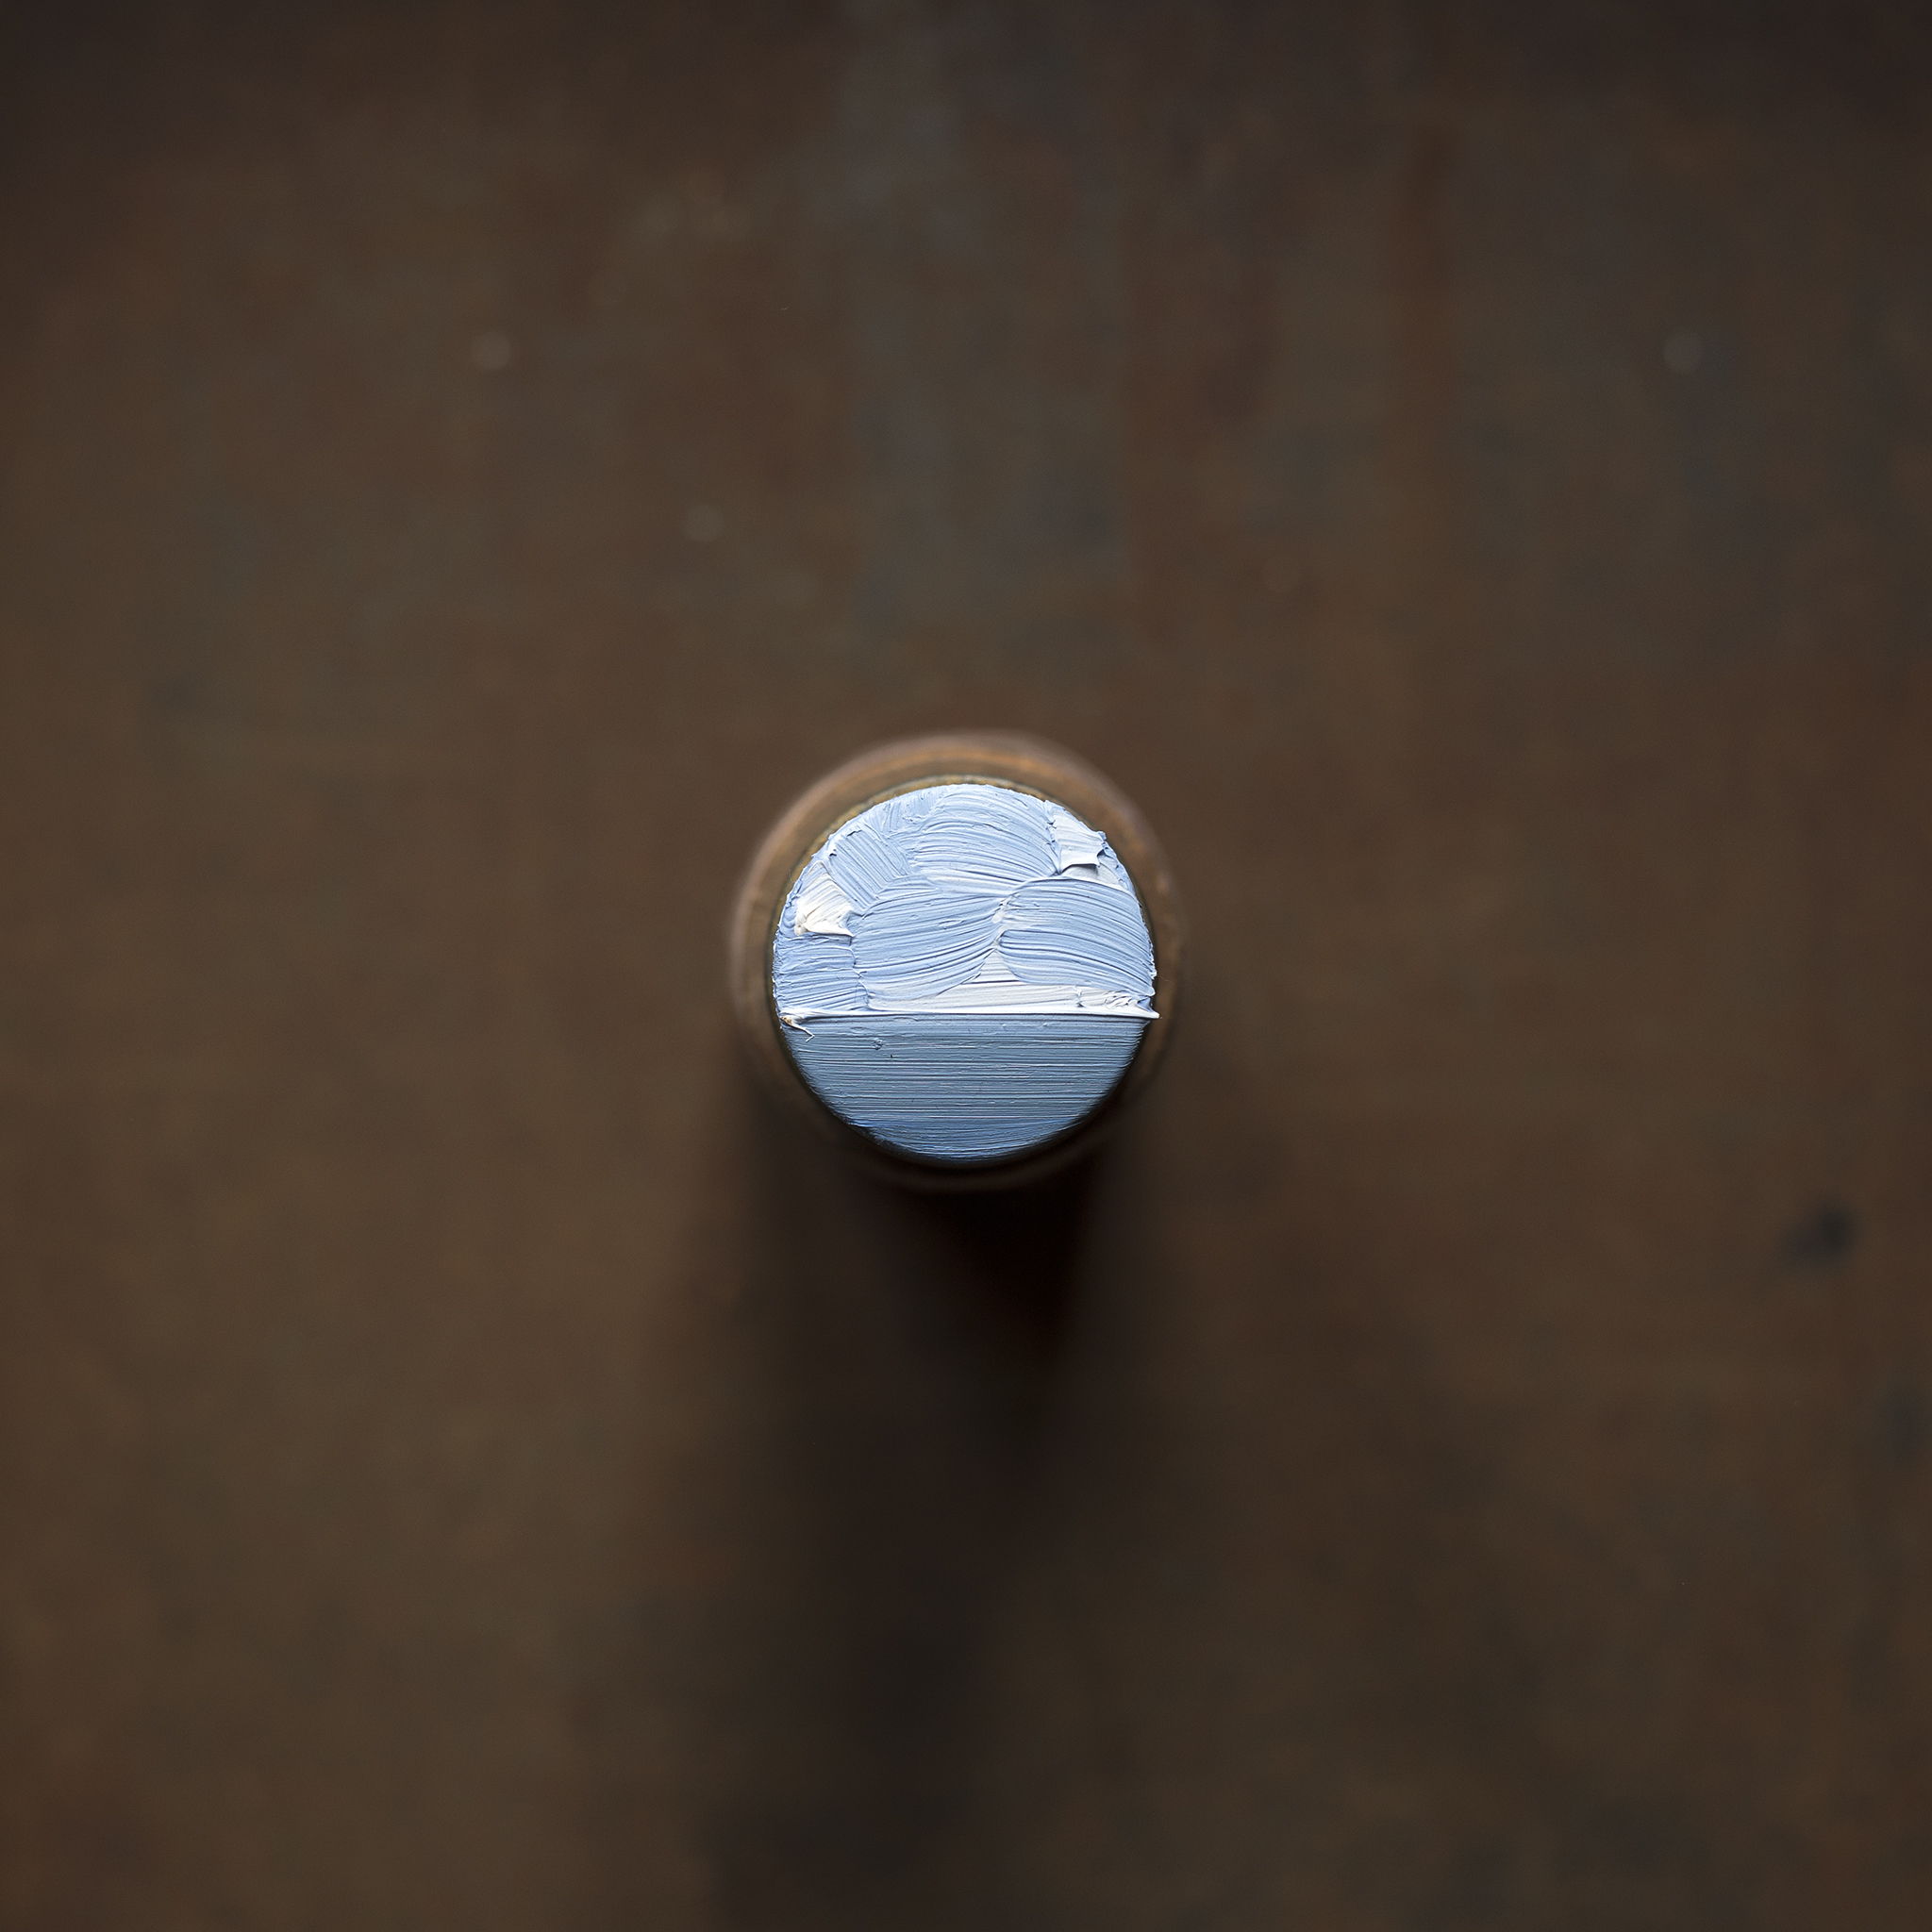 Arctic  (2017) oil on stacked cylindrical pill tin and thread spool, H:10cm W:4cm